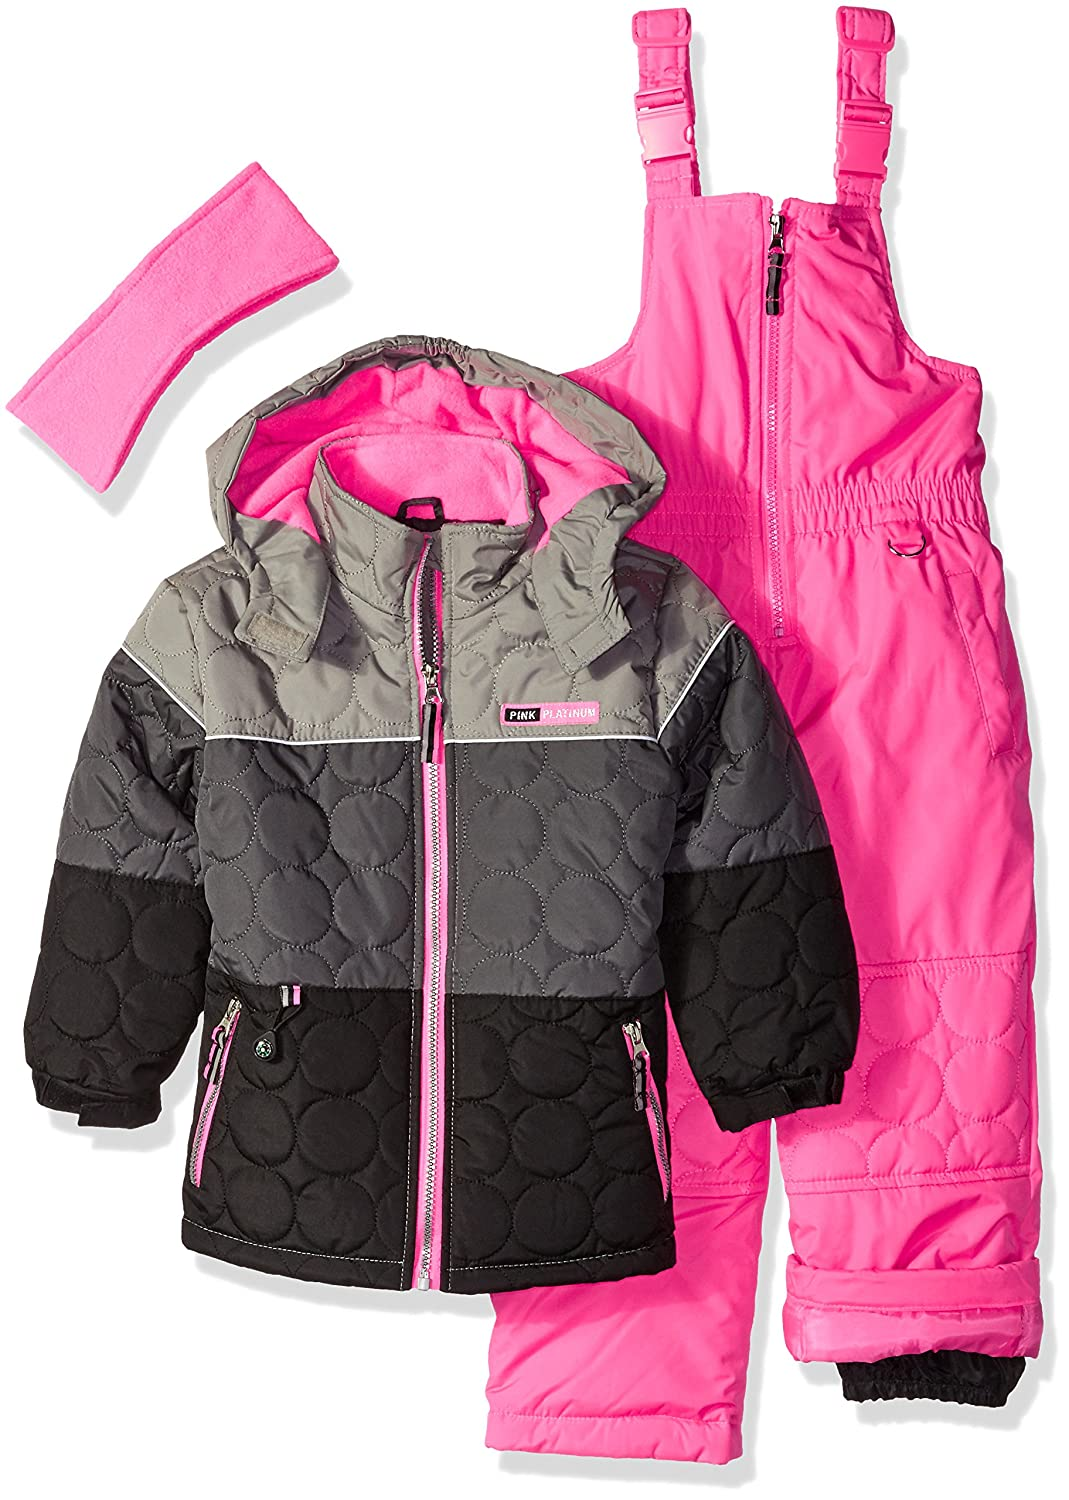 snowsuit platinum pink quilted jackets piece dsc image snowpants girls rev clipped plum bib snowsuits